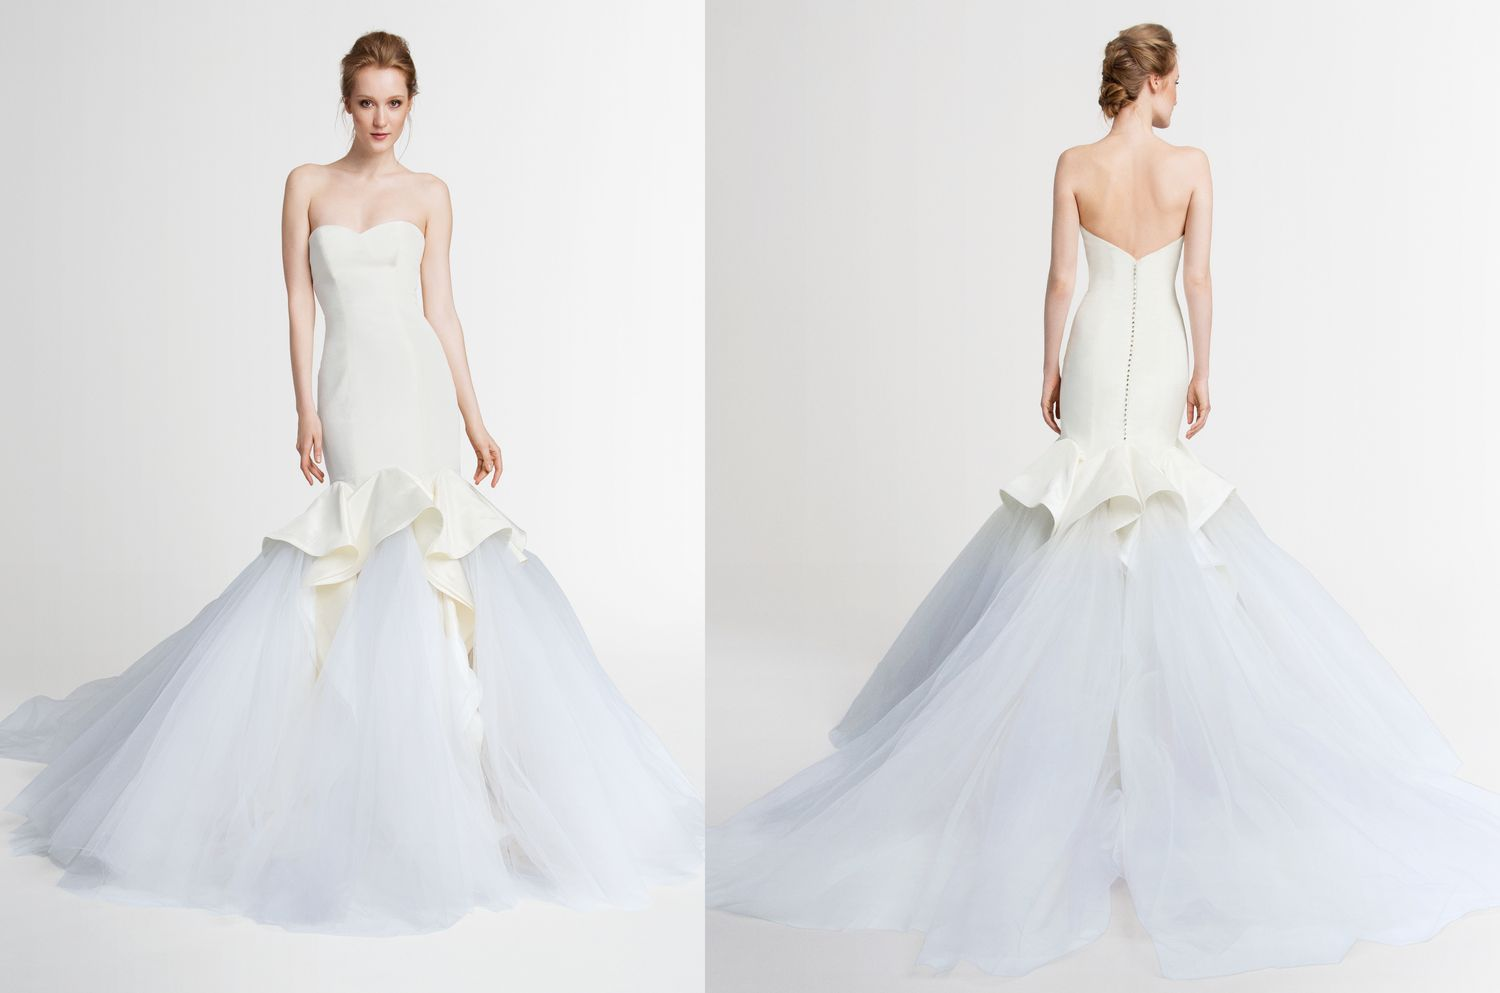 Neela By Kelly Faetanini Spring 2015: Fit To Flare Mikado